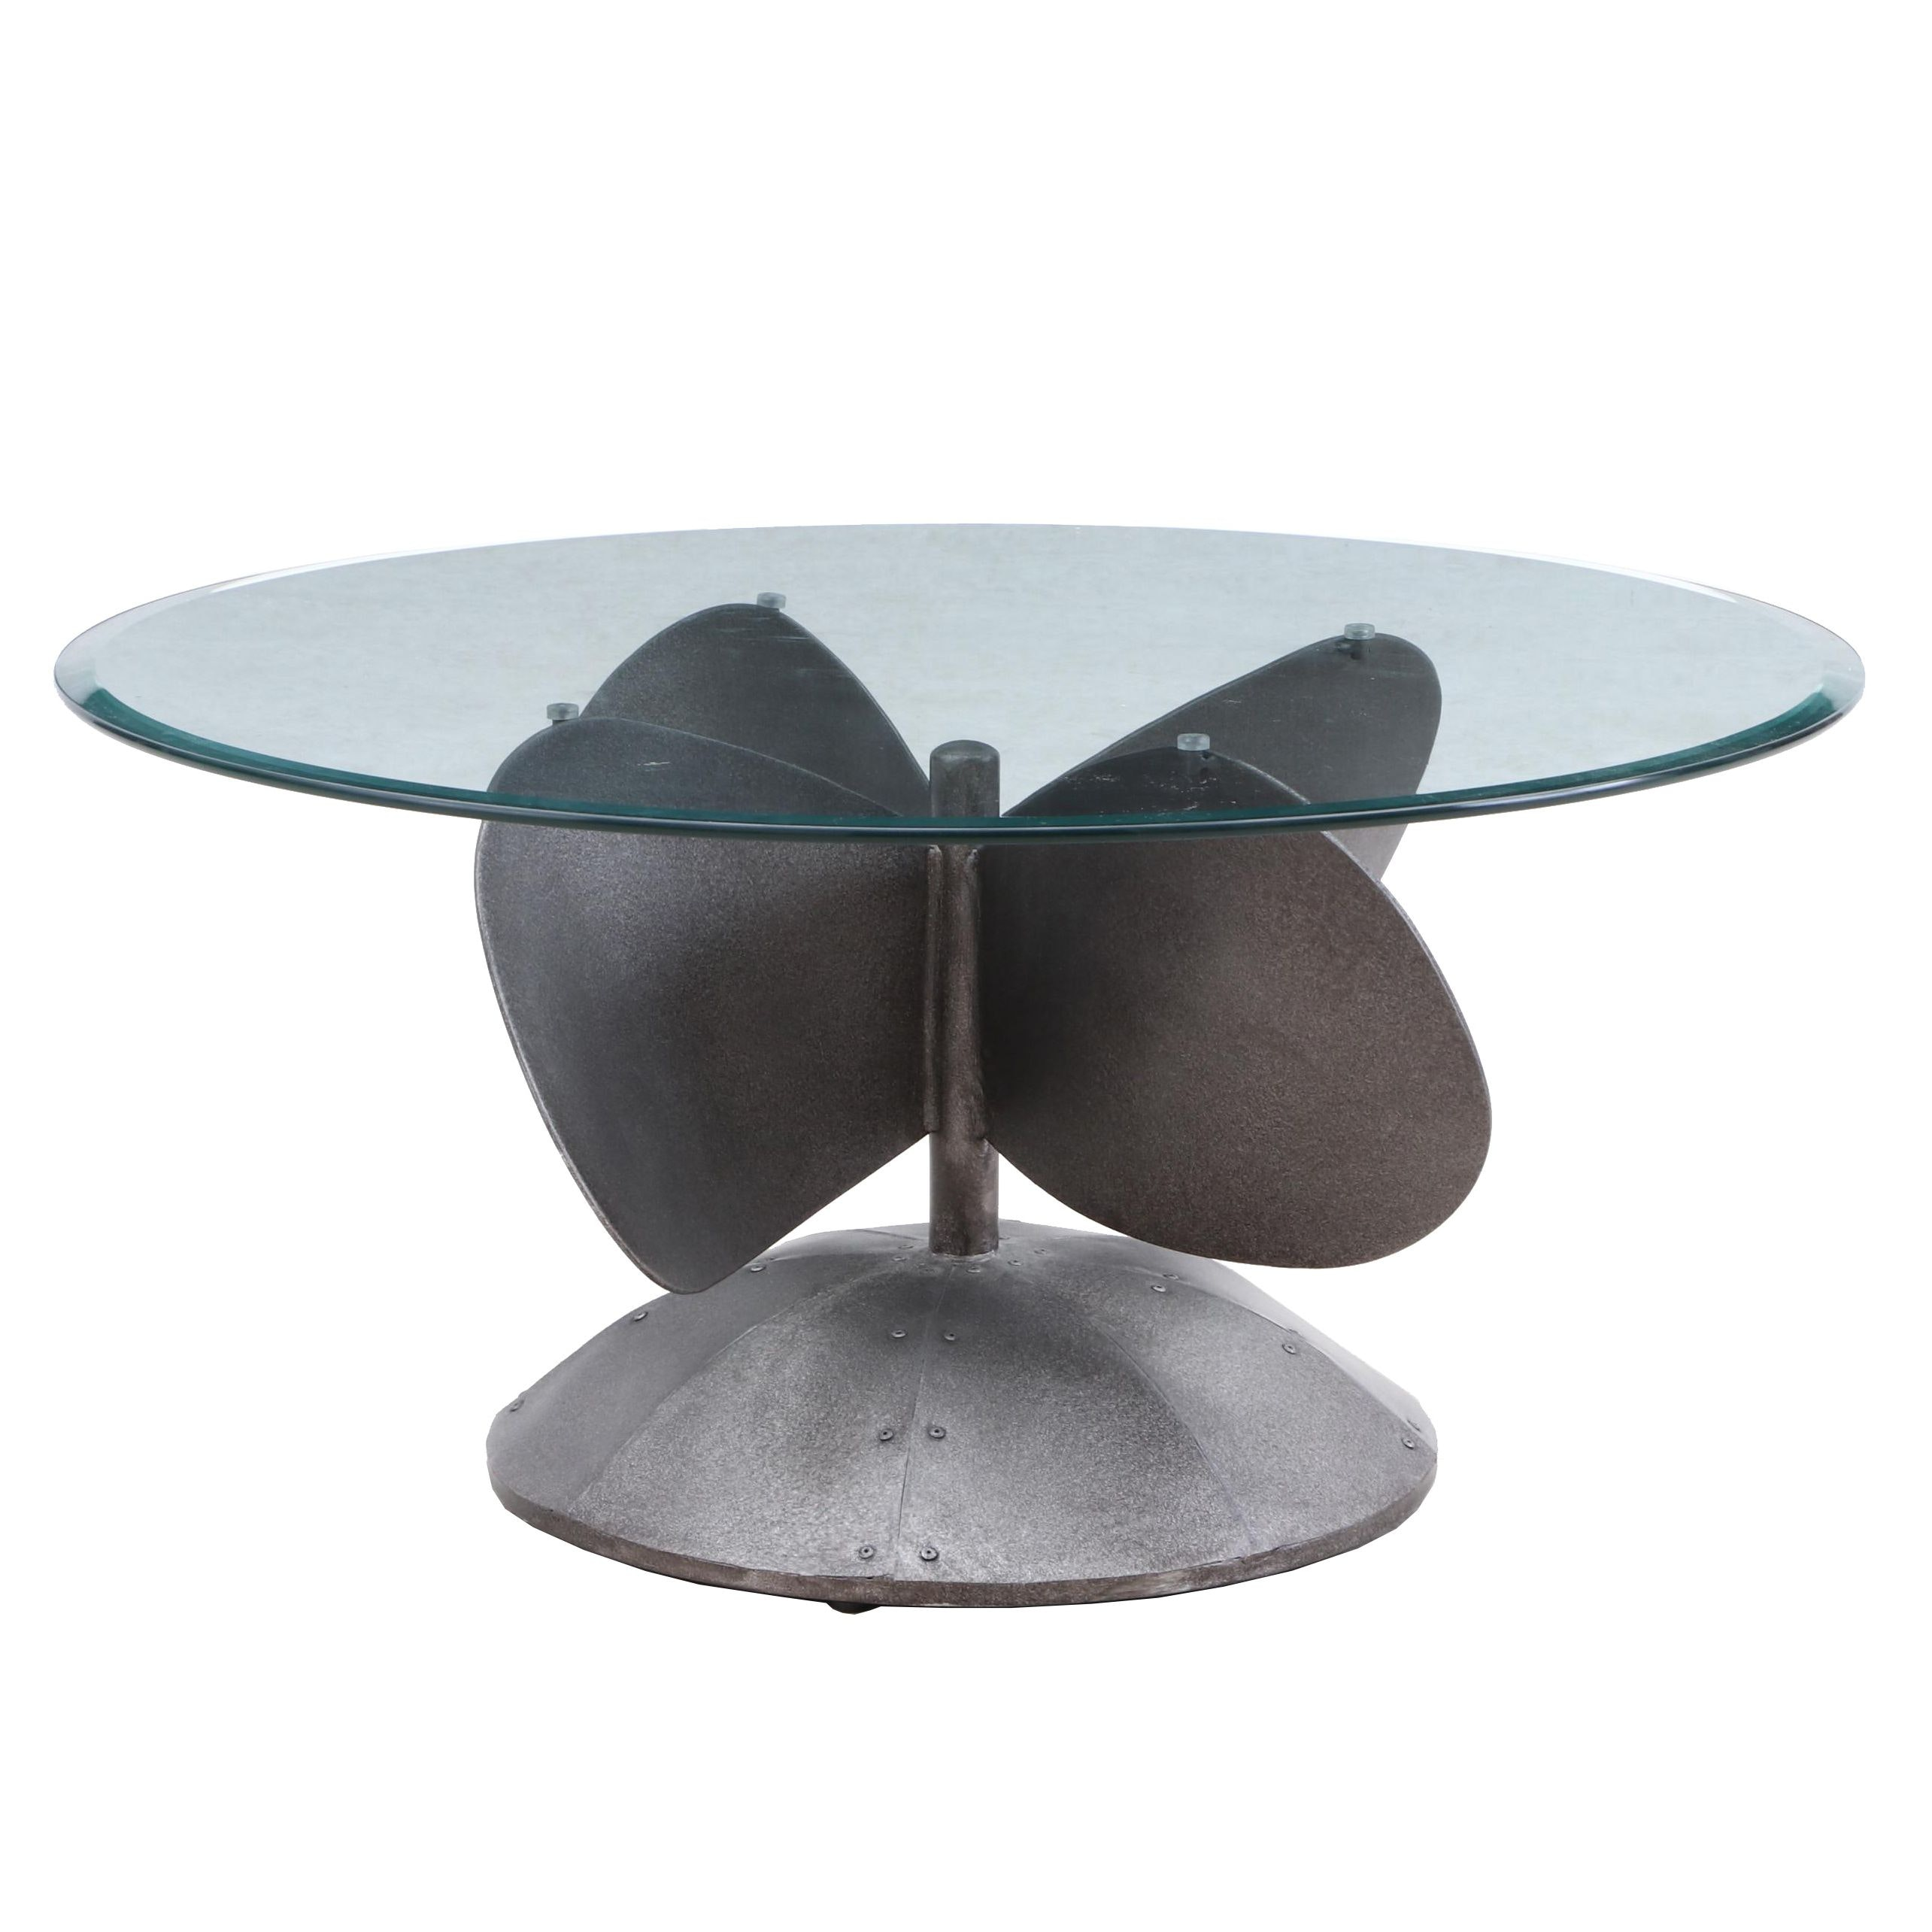 Contemporary Glass Top Coffee Table with Propellor Shaped Metal Base